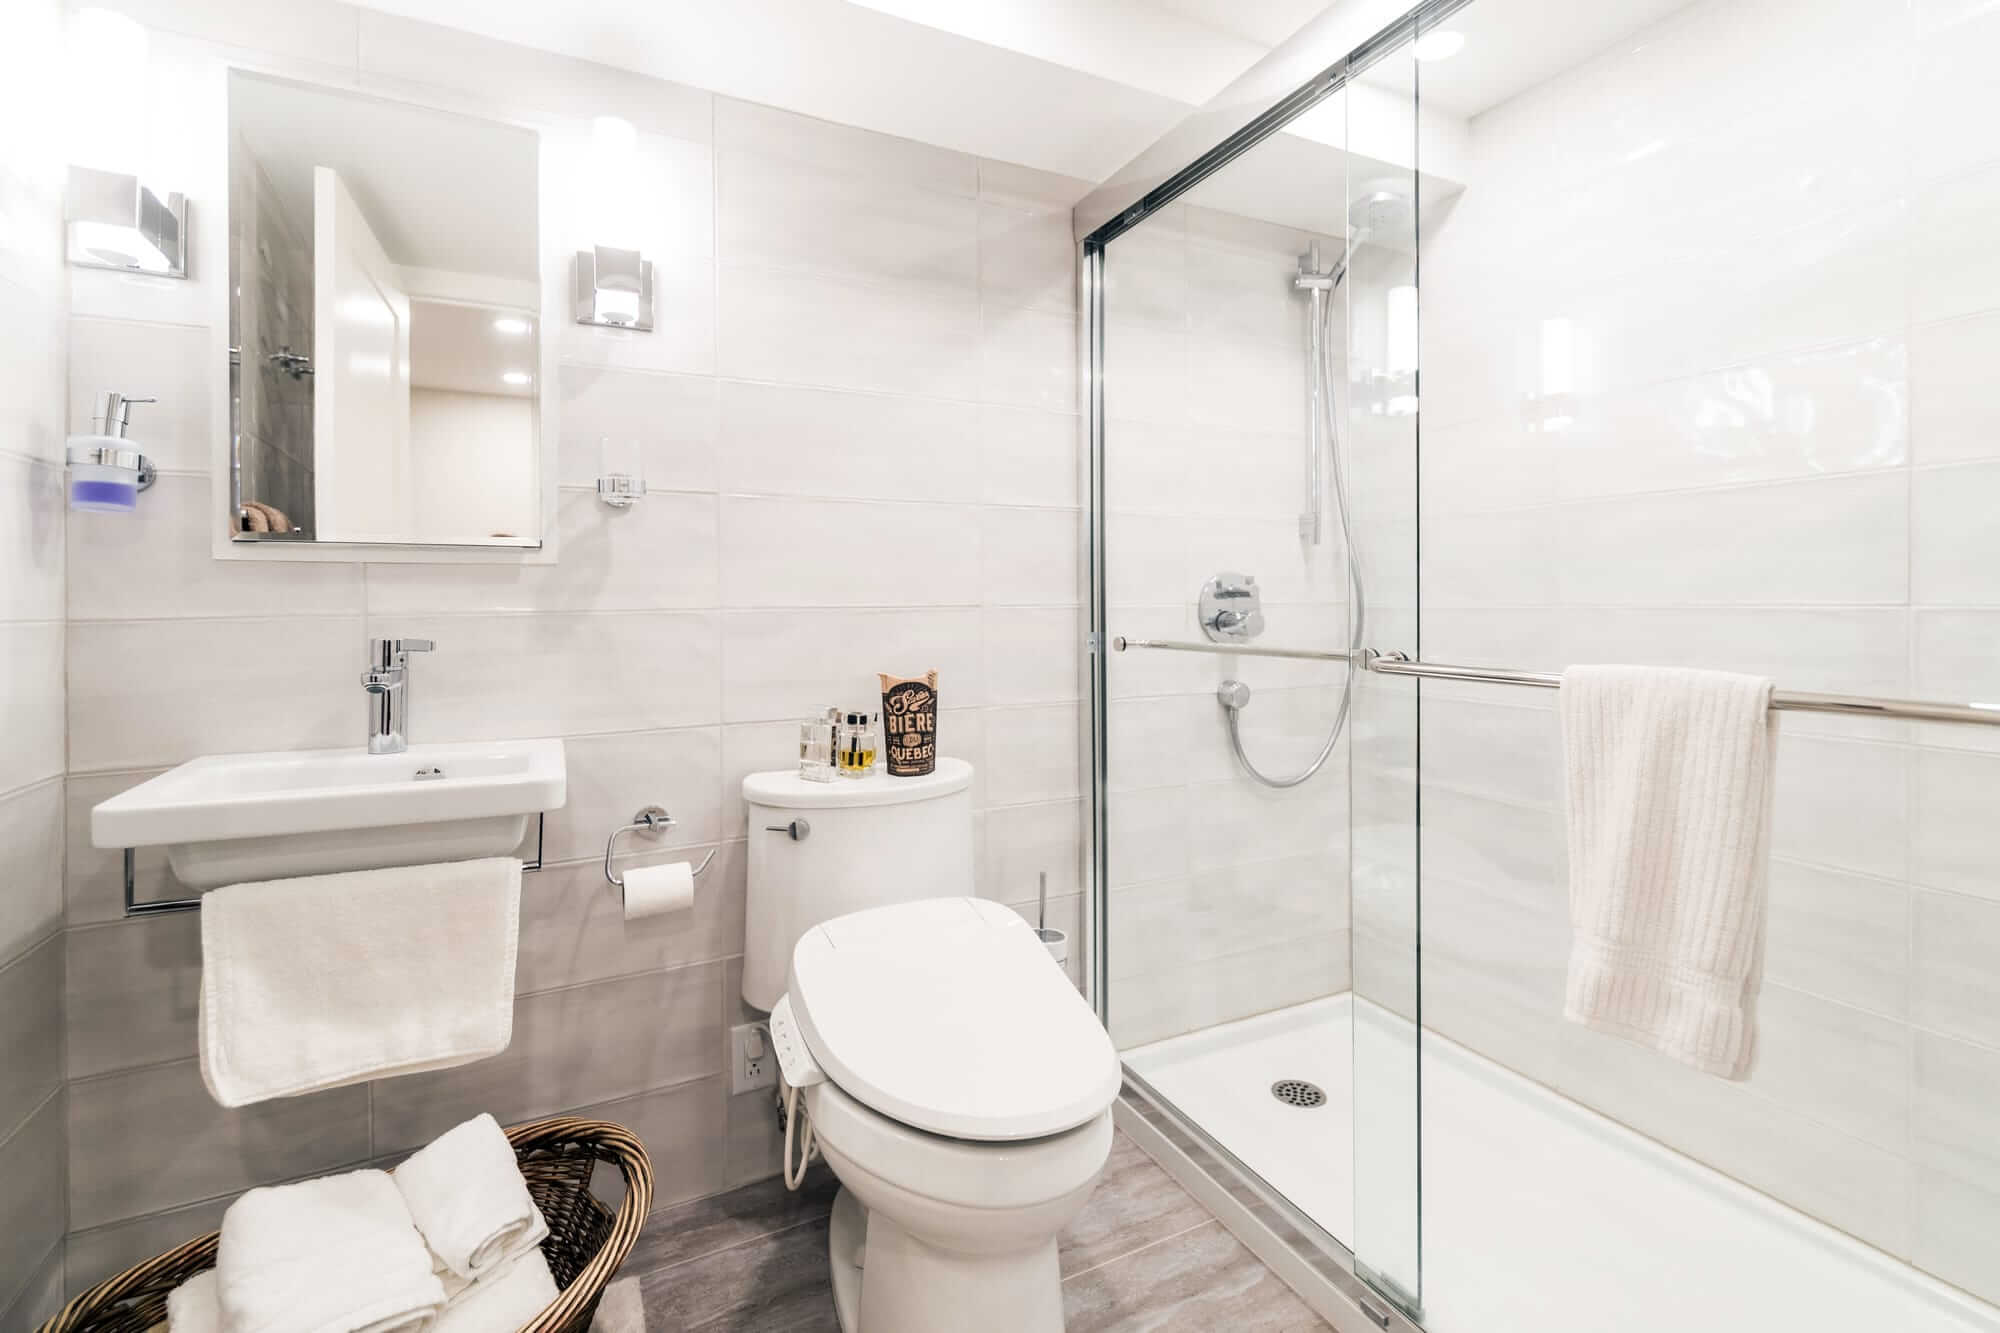 Modern basement bathroom with freestanding white washbasin and a shower bath